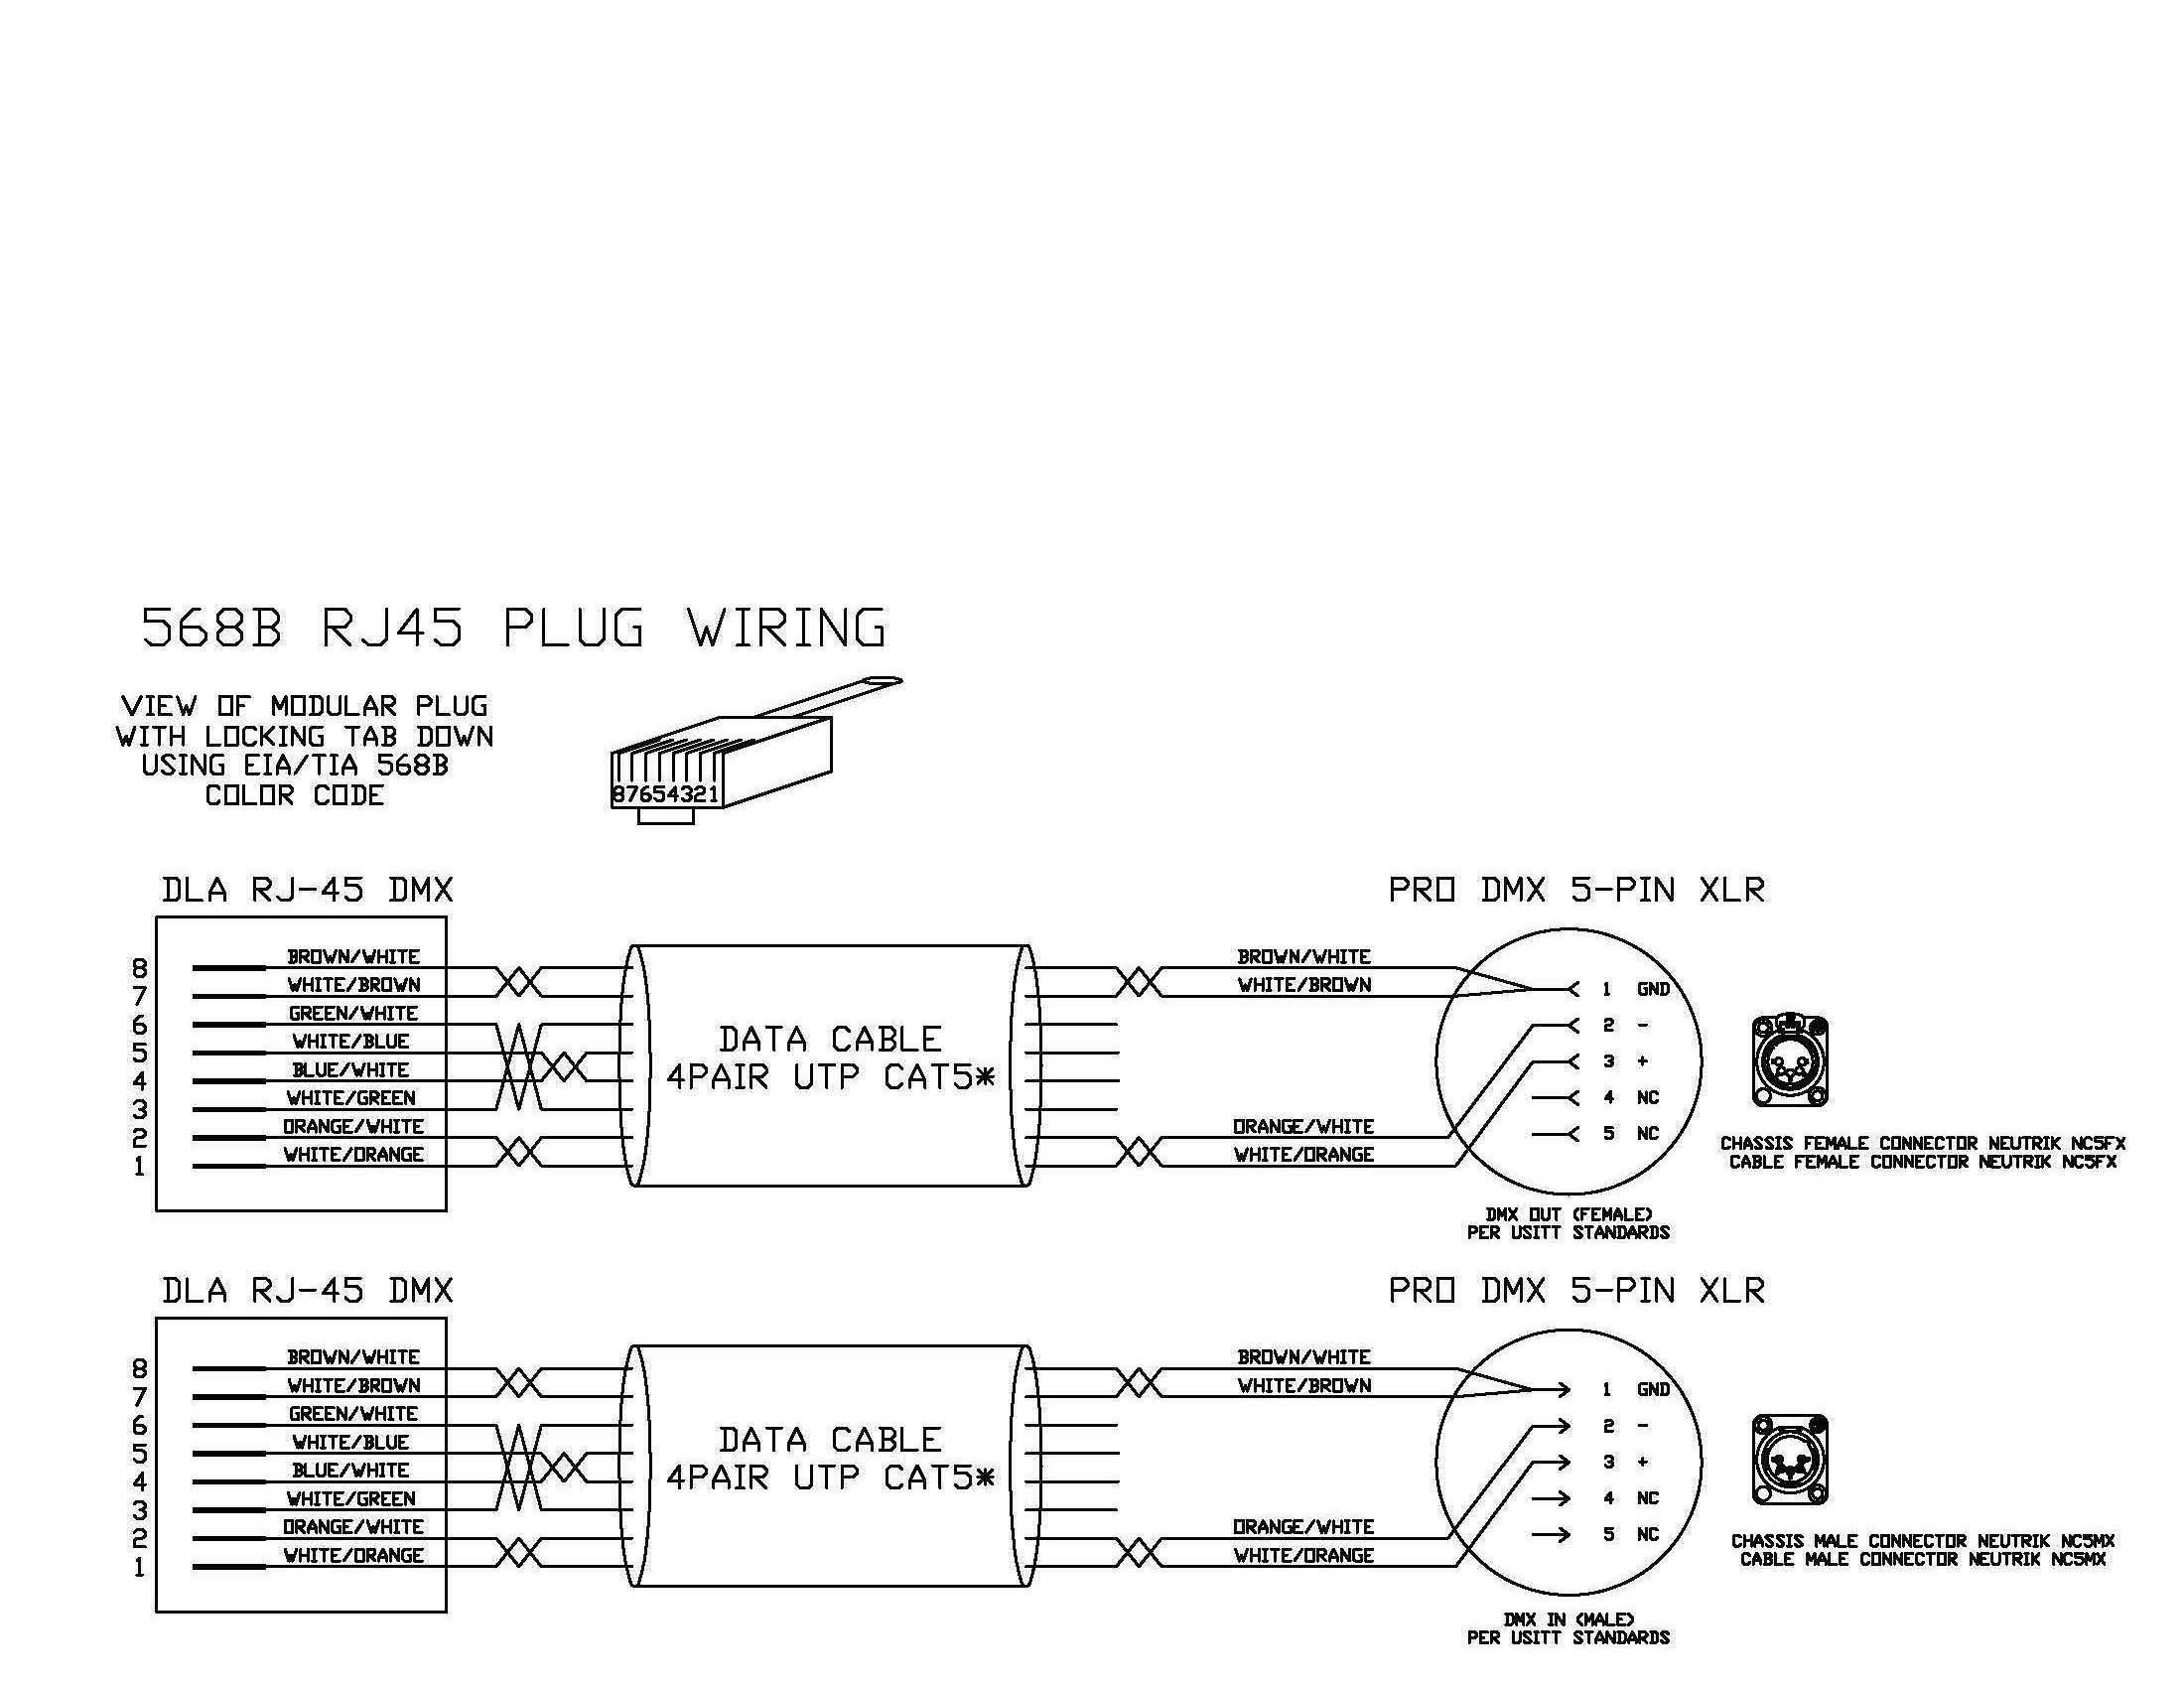 xlr wiring code xlr to rj45 wiring diagram. xlr. electrical wiring ... mini 4 pin xlr wiring diagram #12